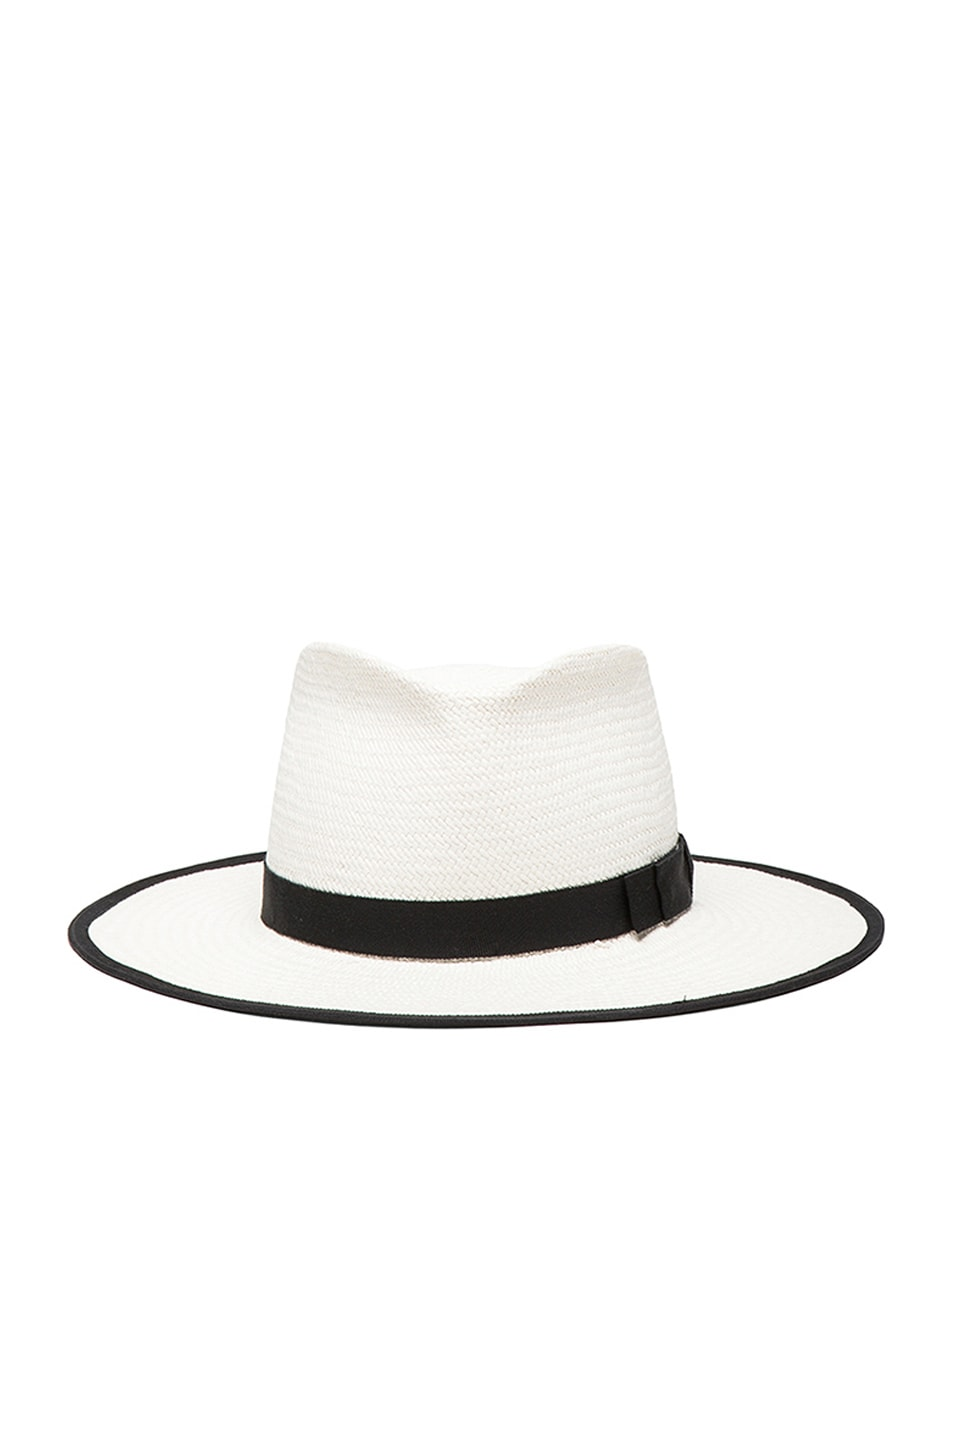 Image 1 of Gladys Tamez Millinery The Sinatra Hat in White